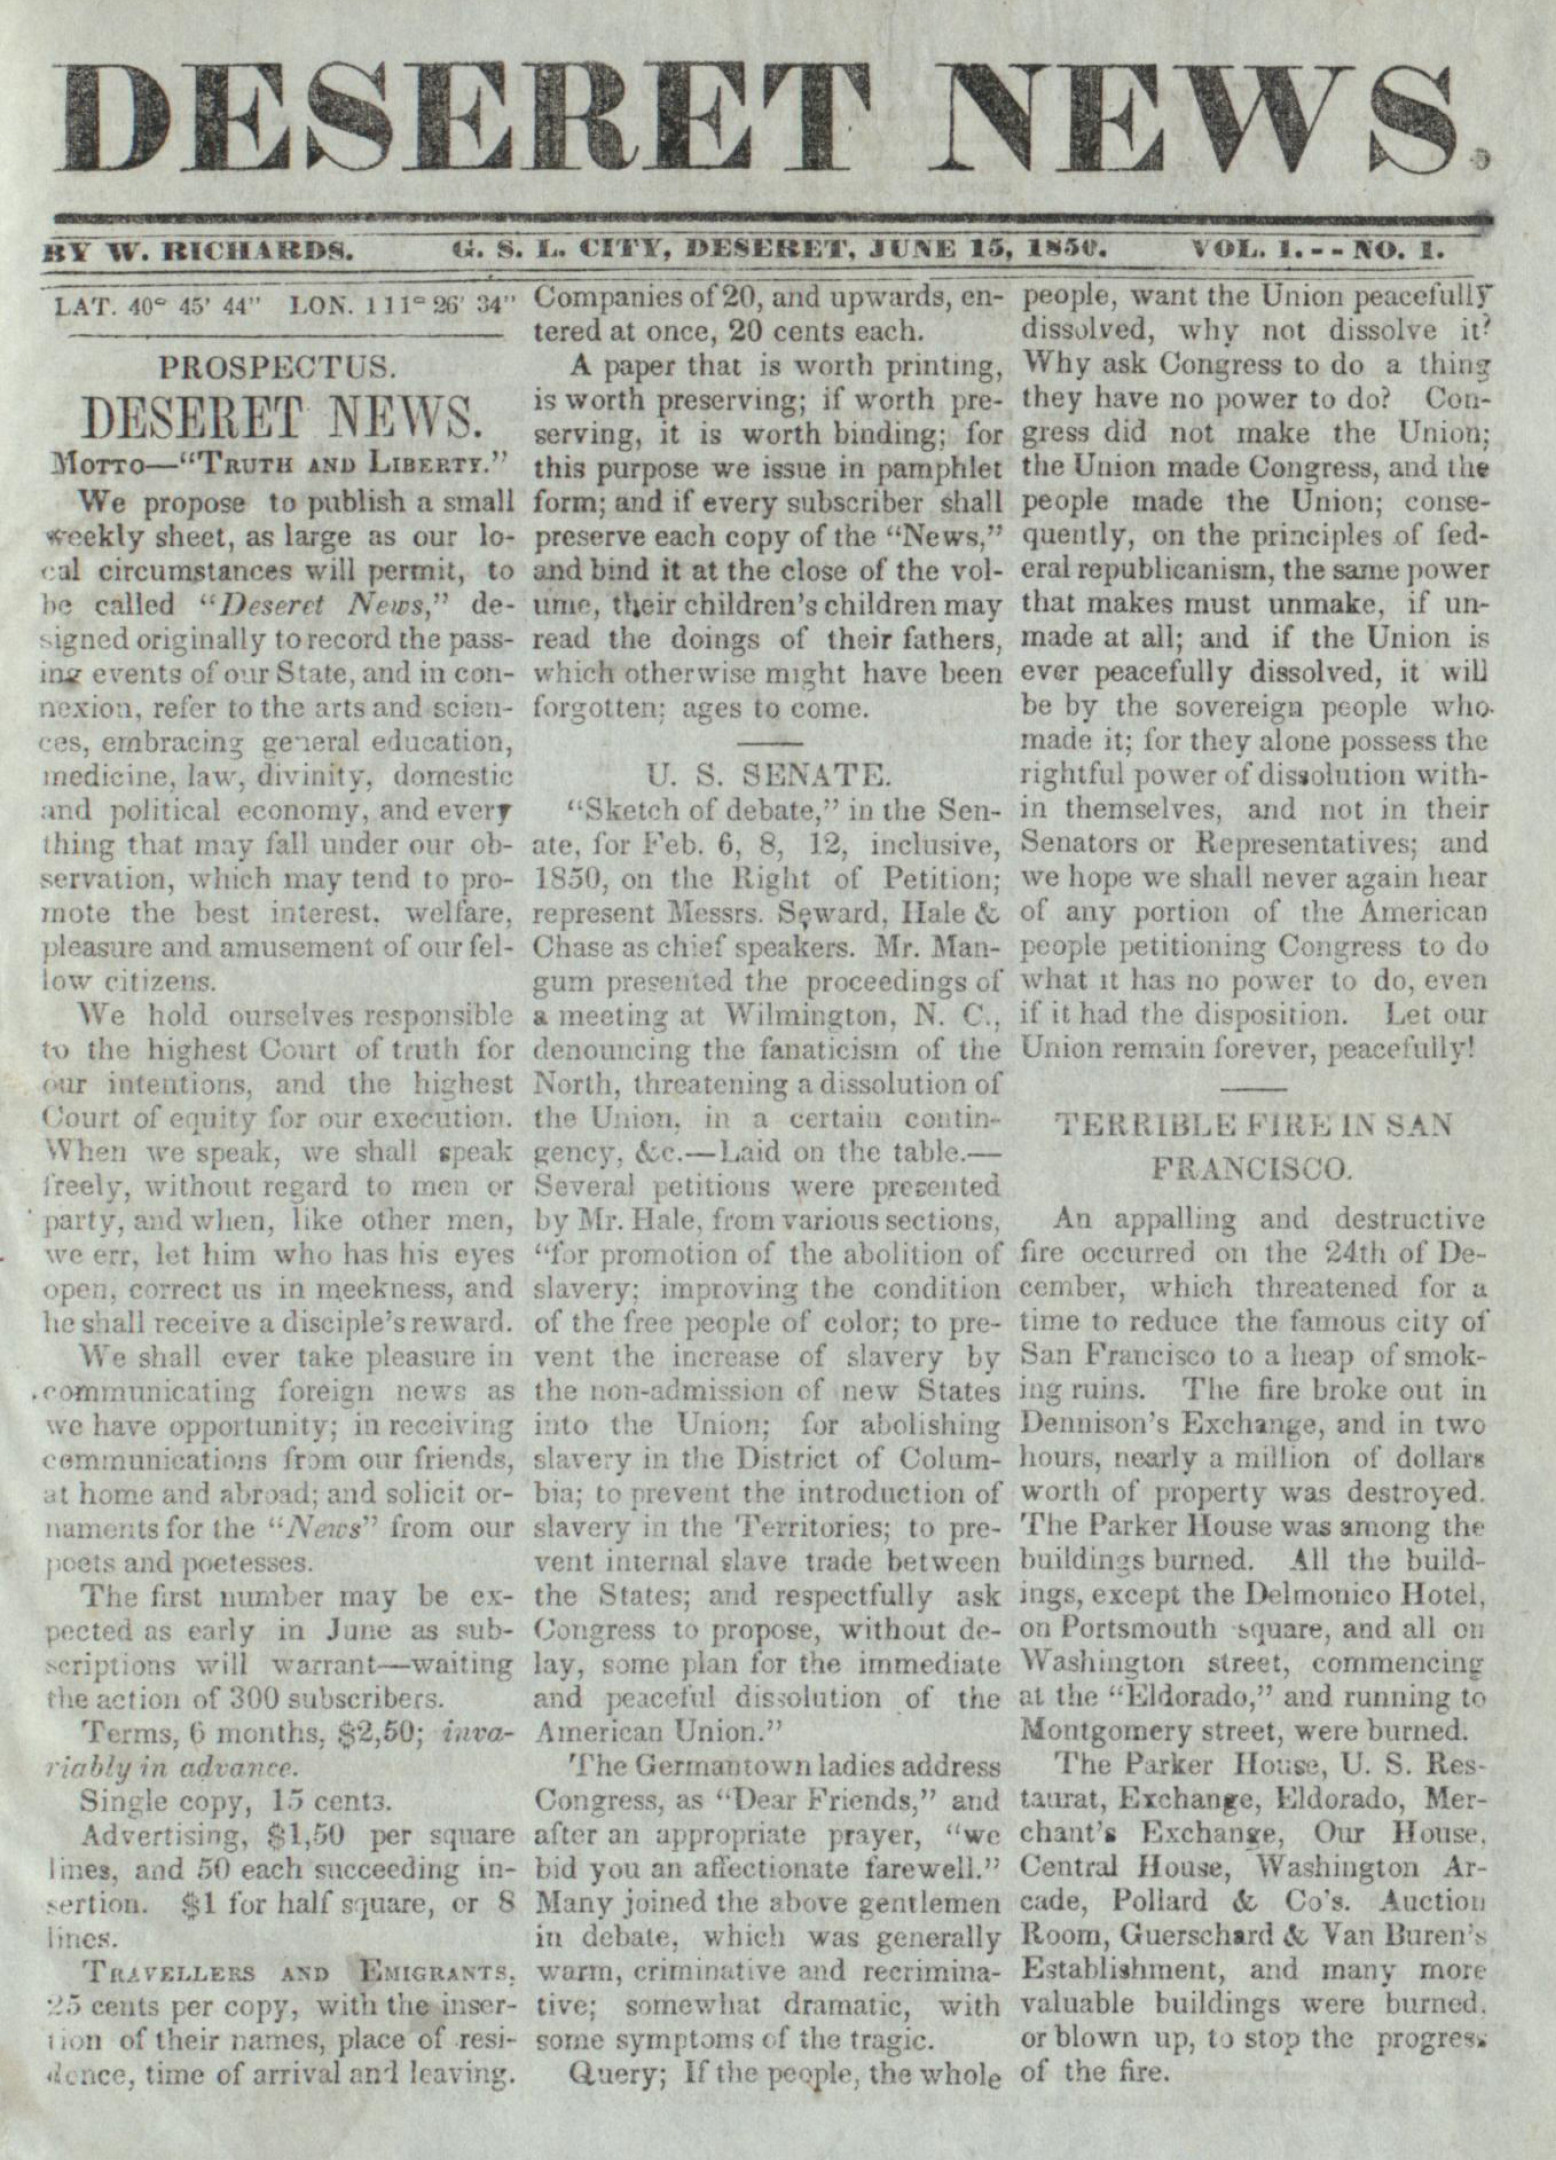 File:Deseret News - first issue - 15 June 1850.jpg - Wikimedia Commons